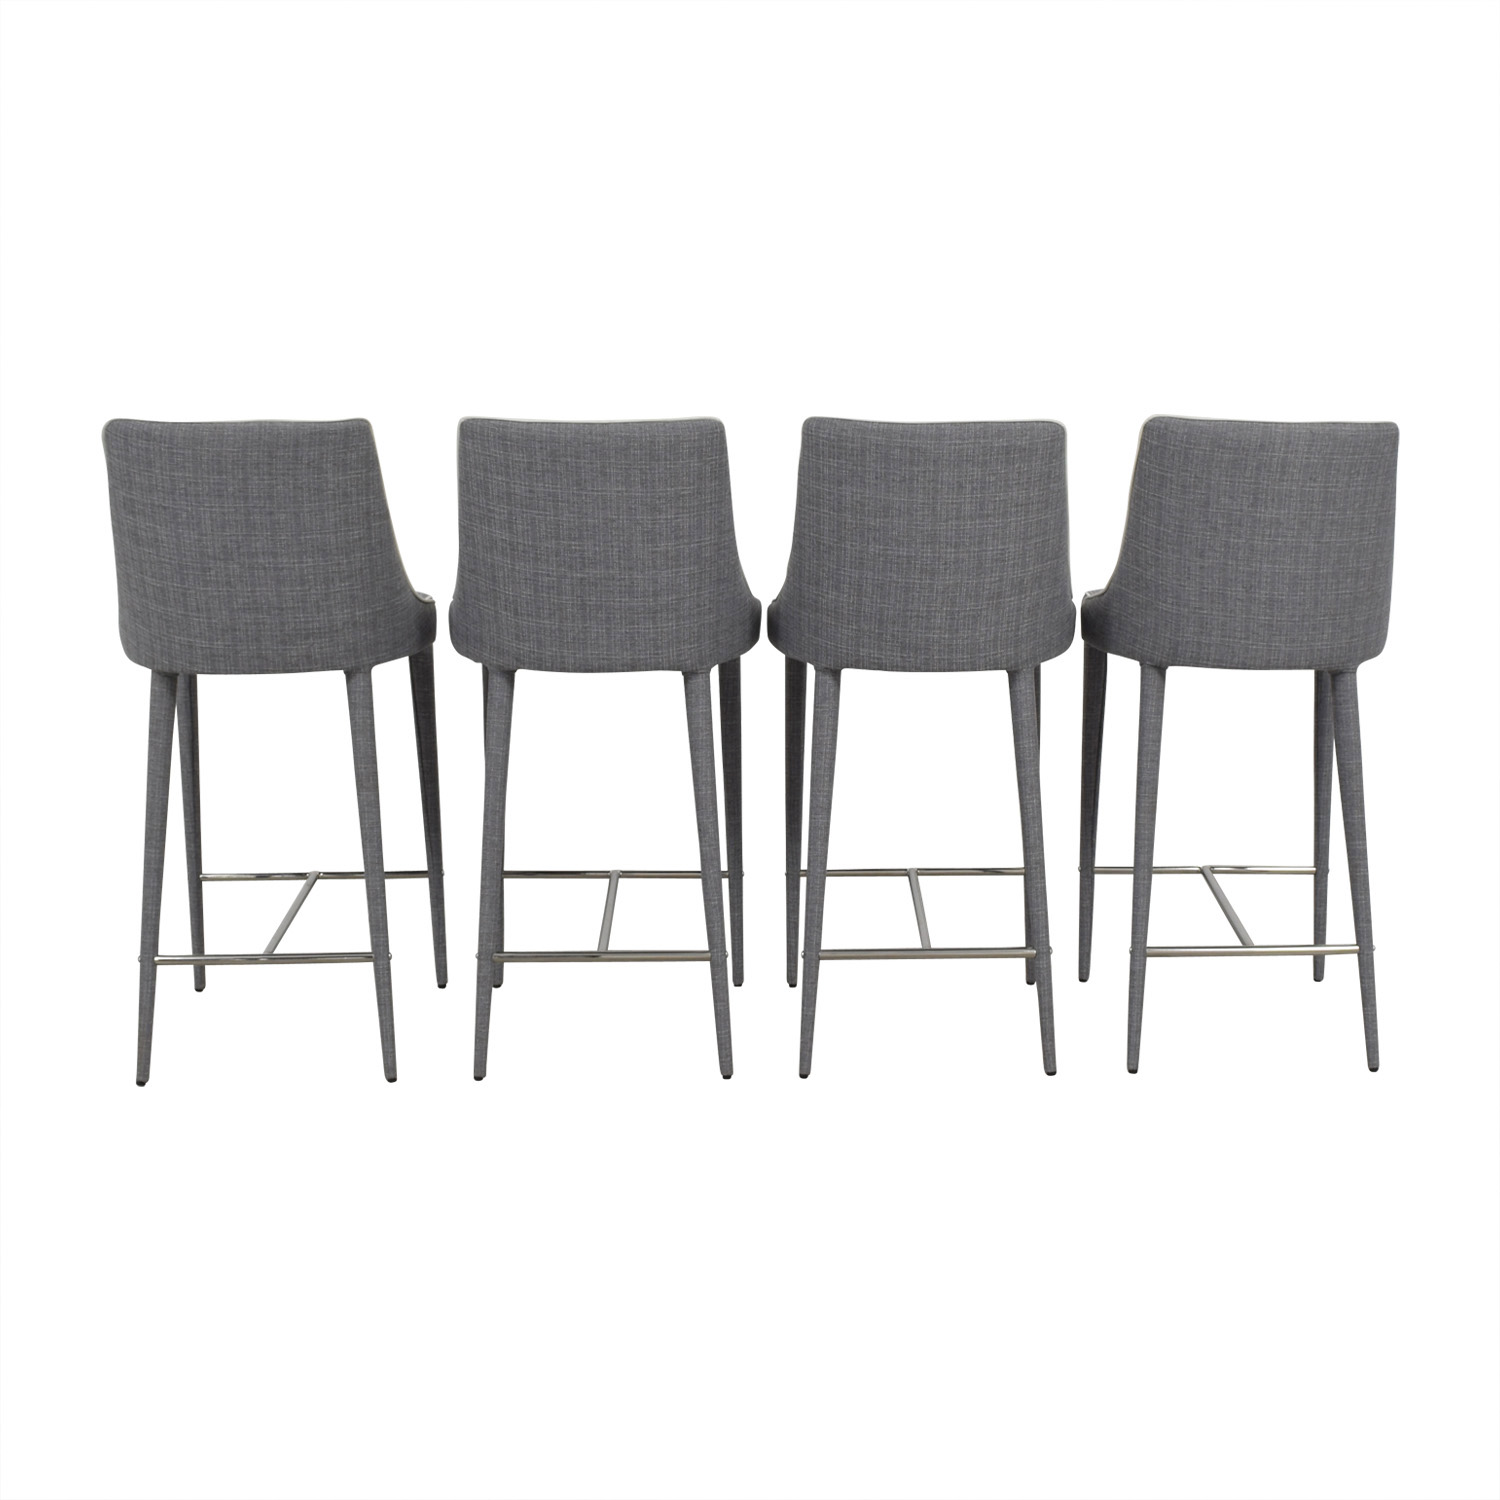 Inmod Inmod Gray Fabric Stools Chairs